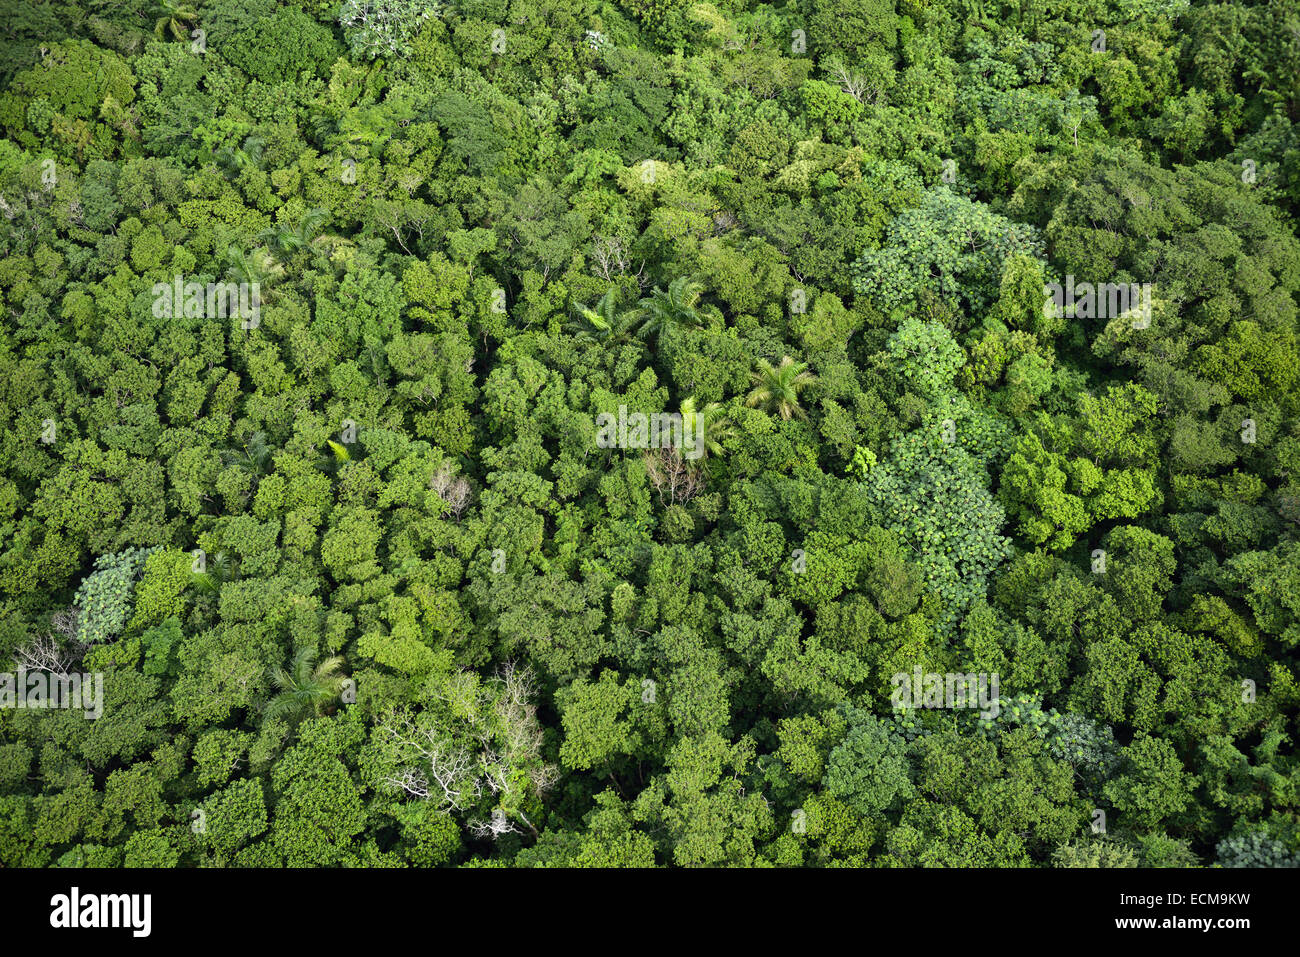 Aerial view of tropical rain forest treetops on Mount Isabel de Torres Puerto Plata Dominican Republic - Stock Image